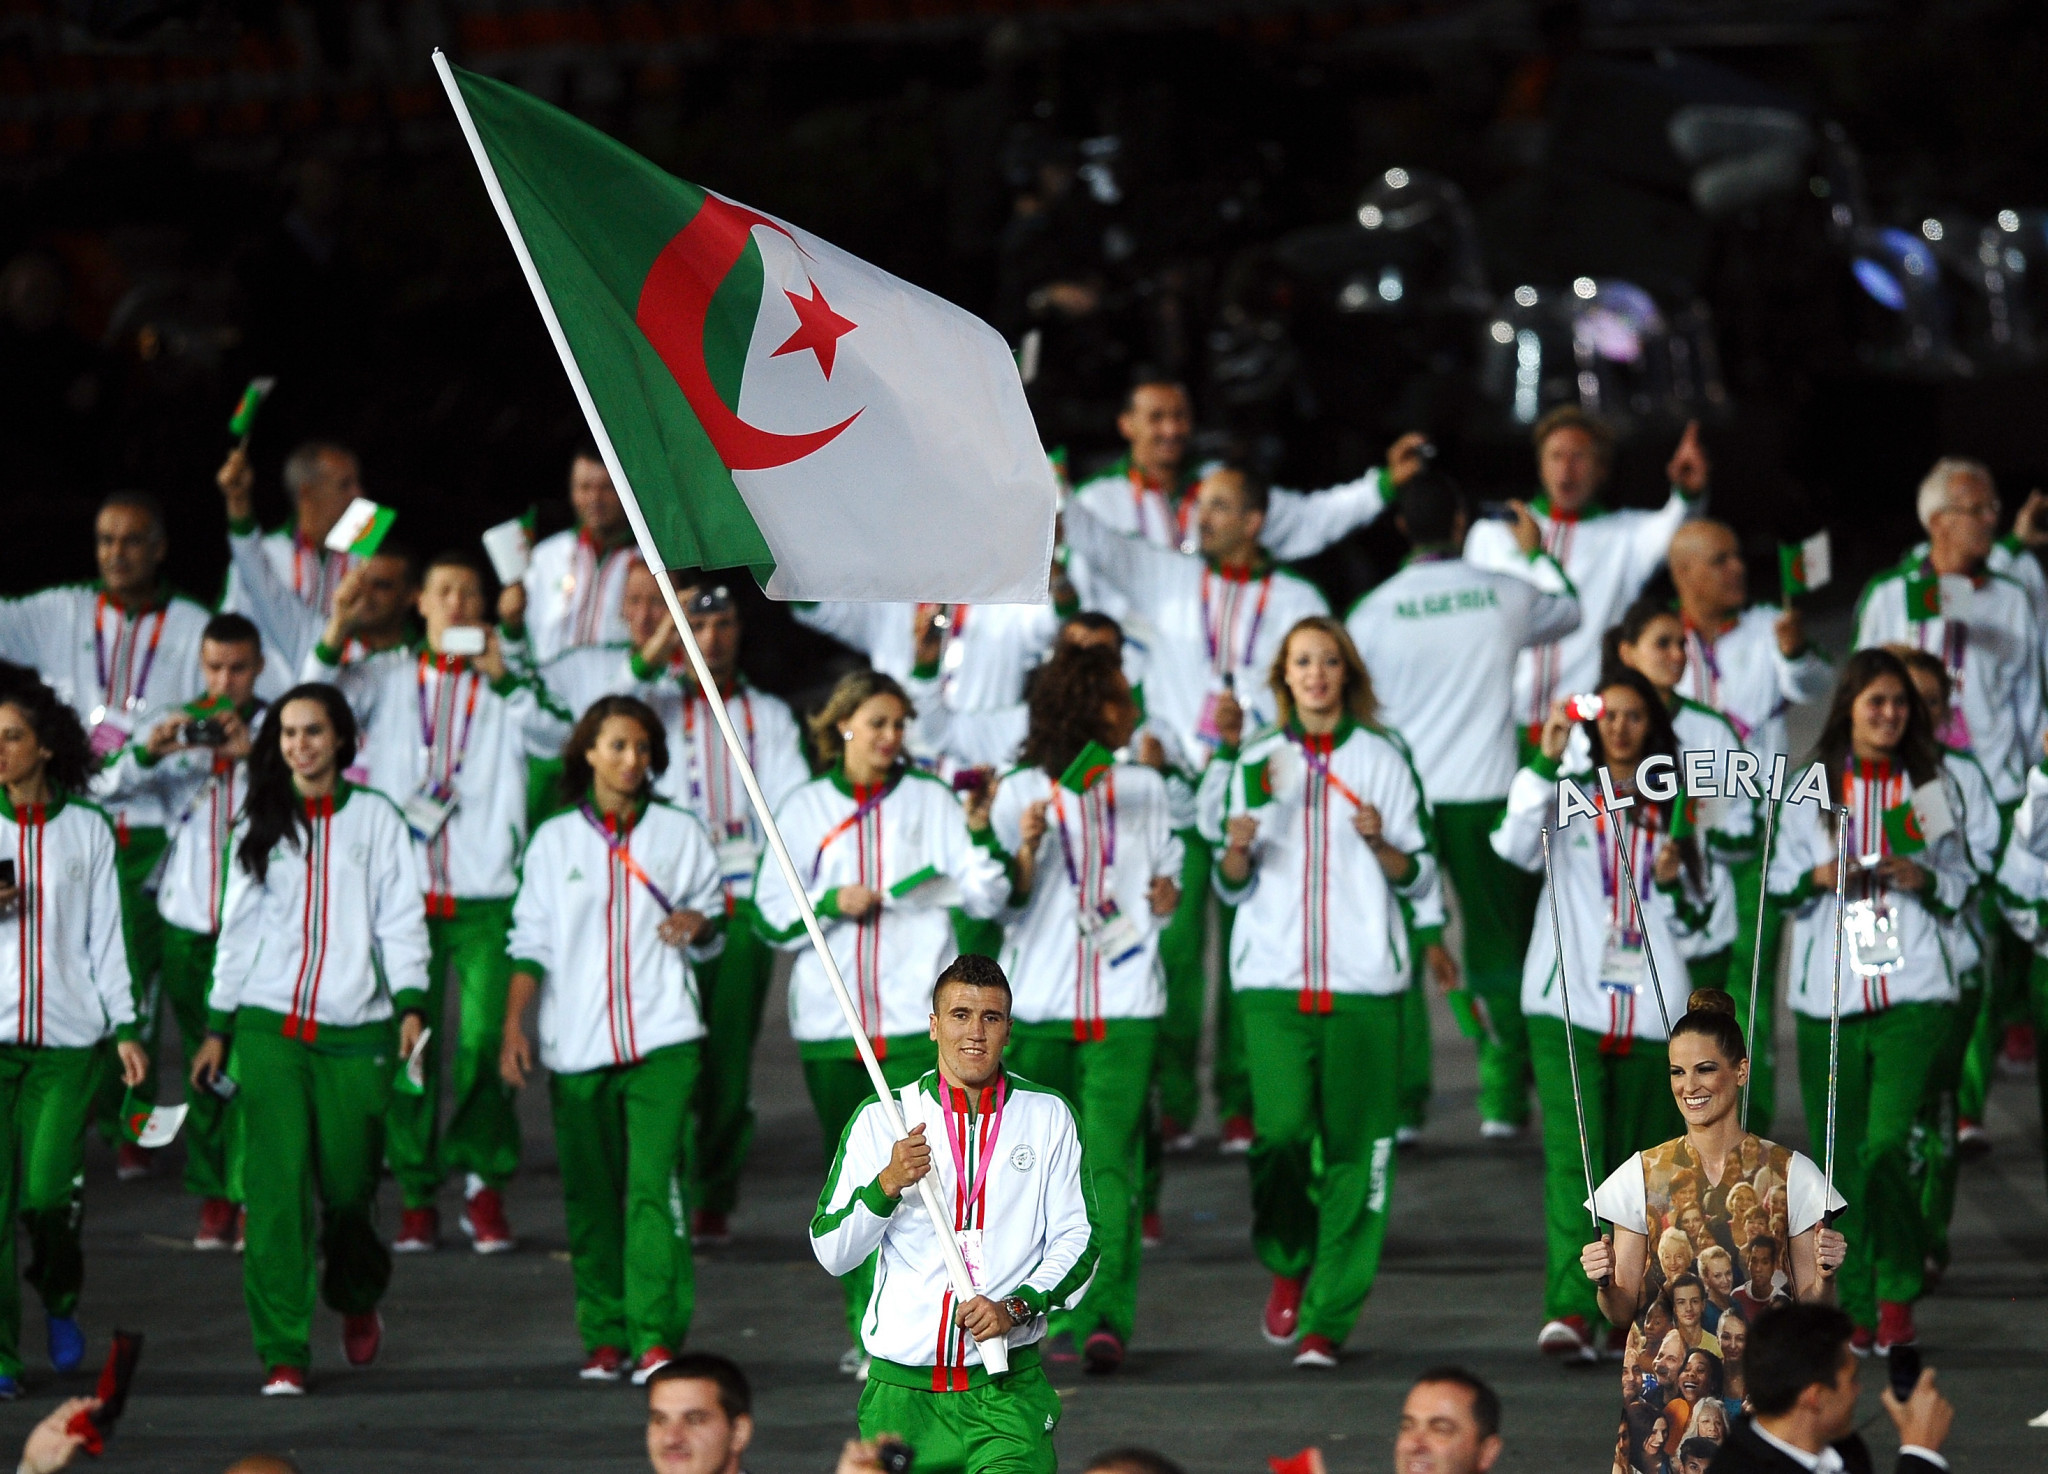 Boughadou announces run for Algerian Olympic Committee President ahead of June vote